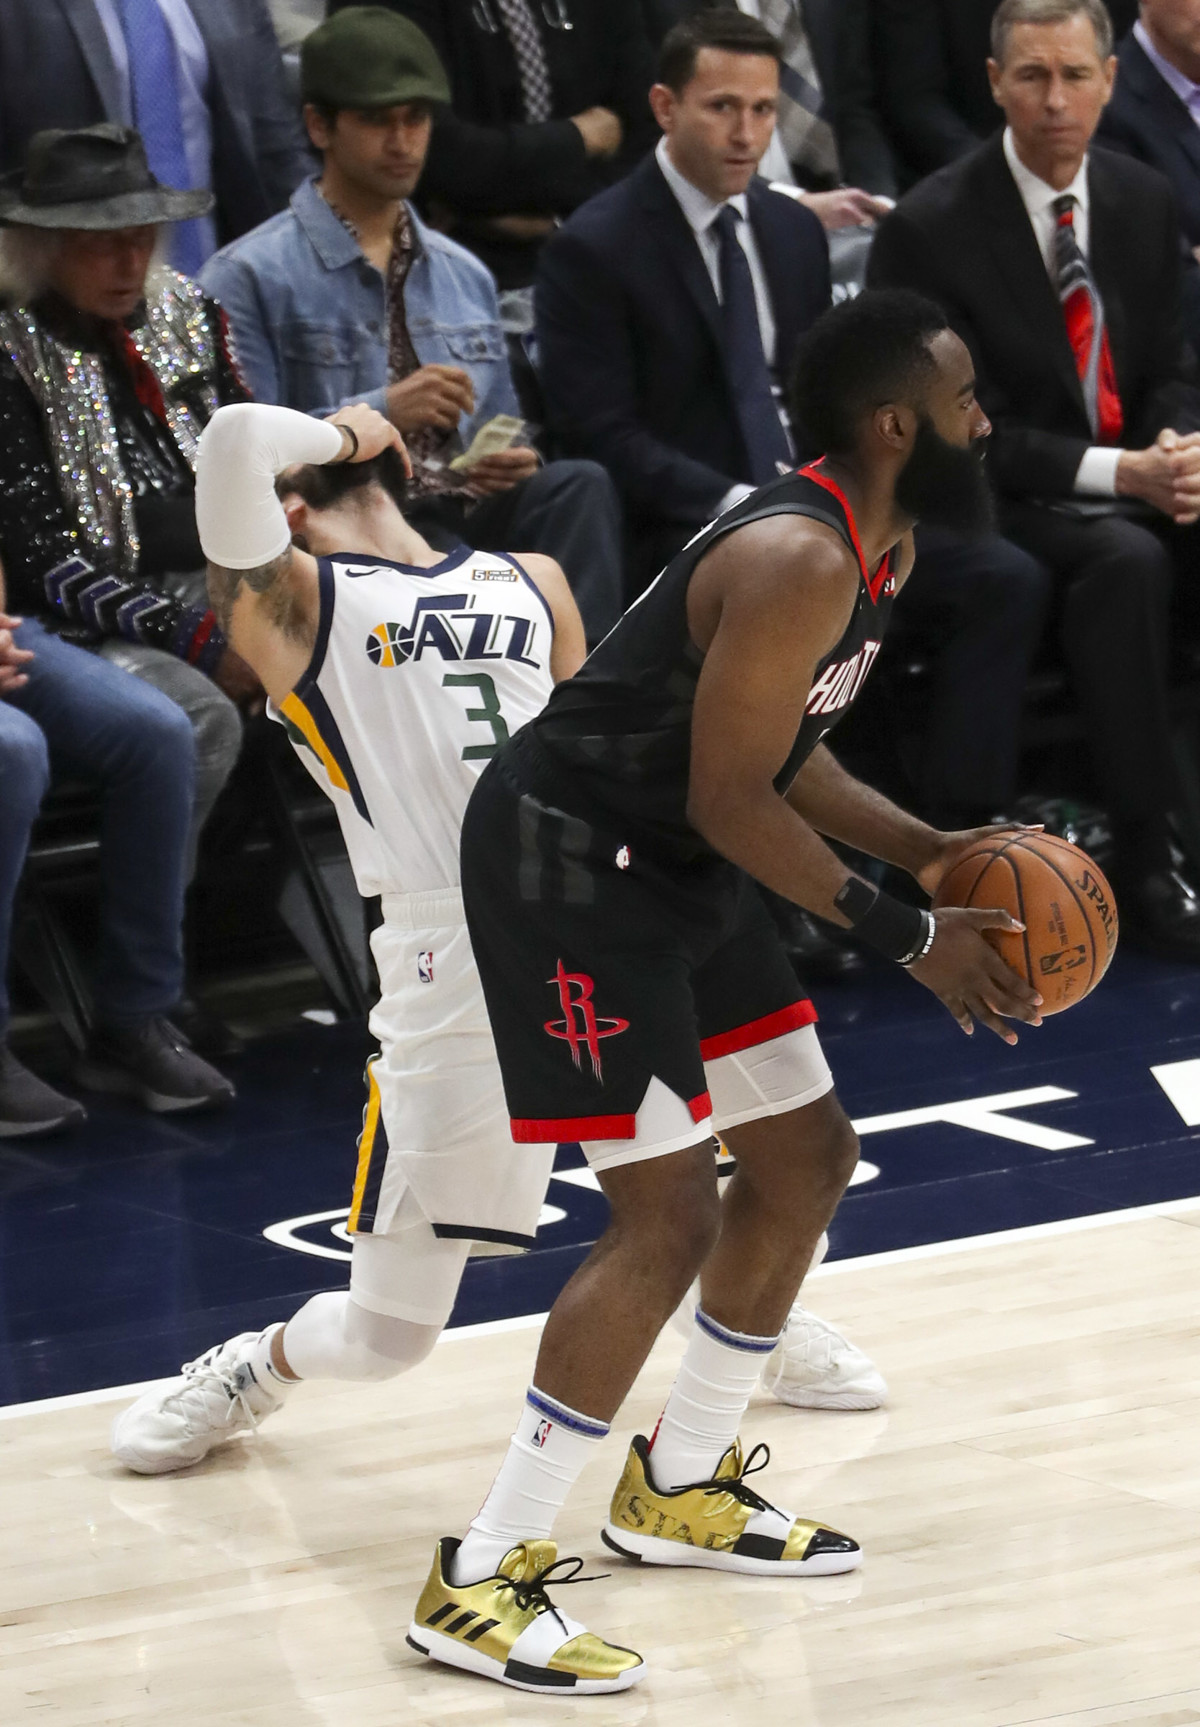 690ccbe48b62 Morning links  Are James Harden s step-back 3-pointers travels   Donovan  Mitchell  ignores the rules